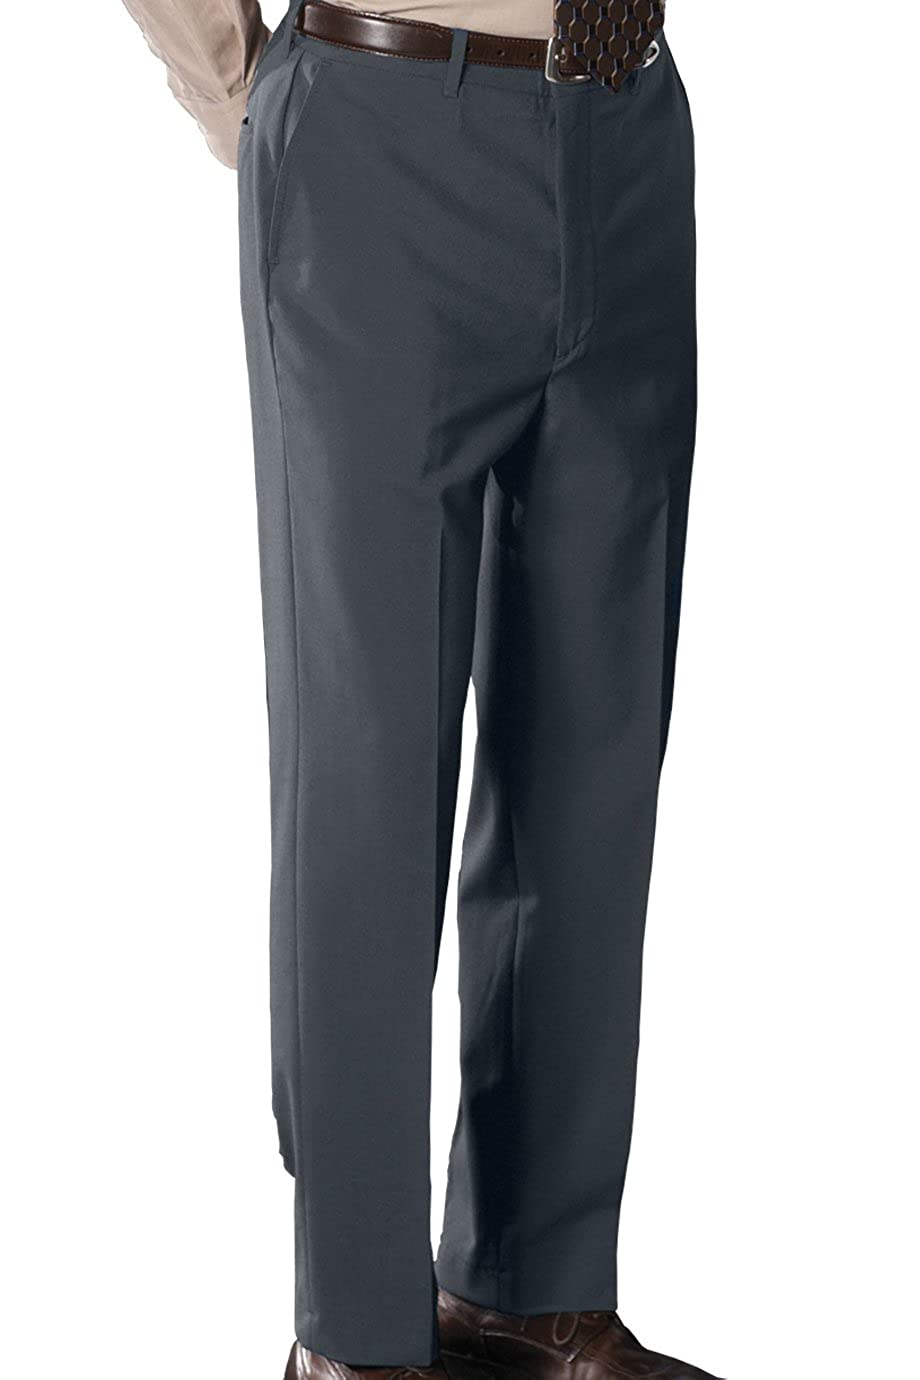 Dark Grey 34 33 Ed Garments Mens 2780 Novelty Pants